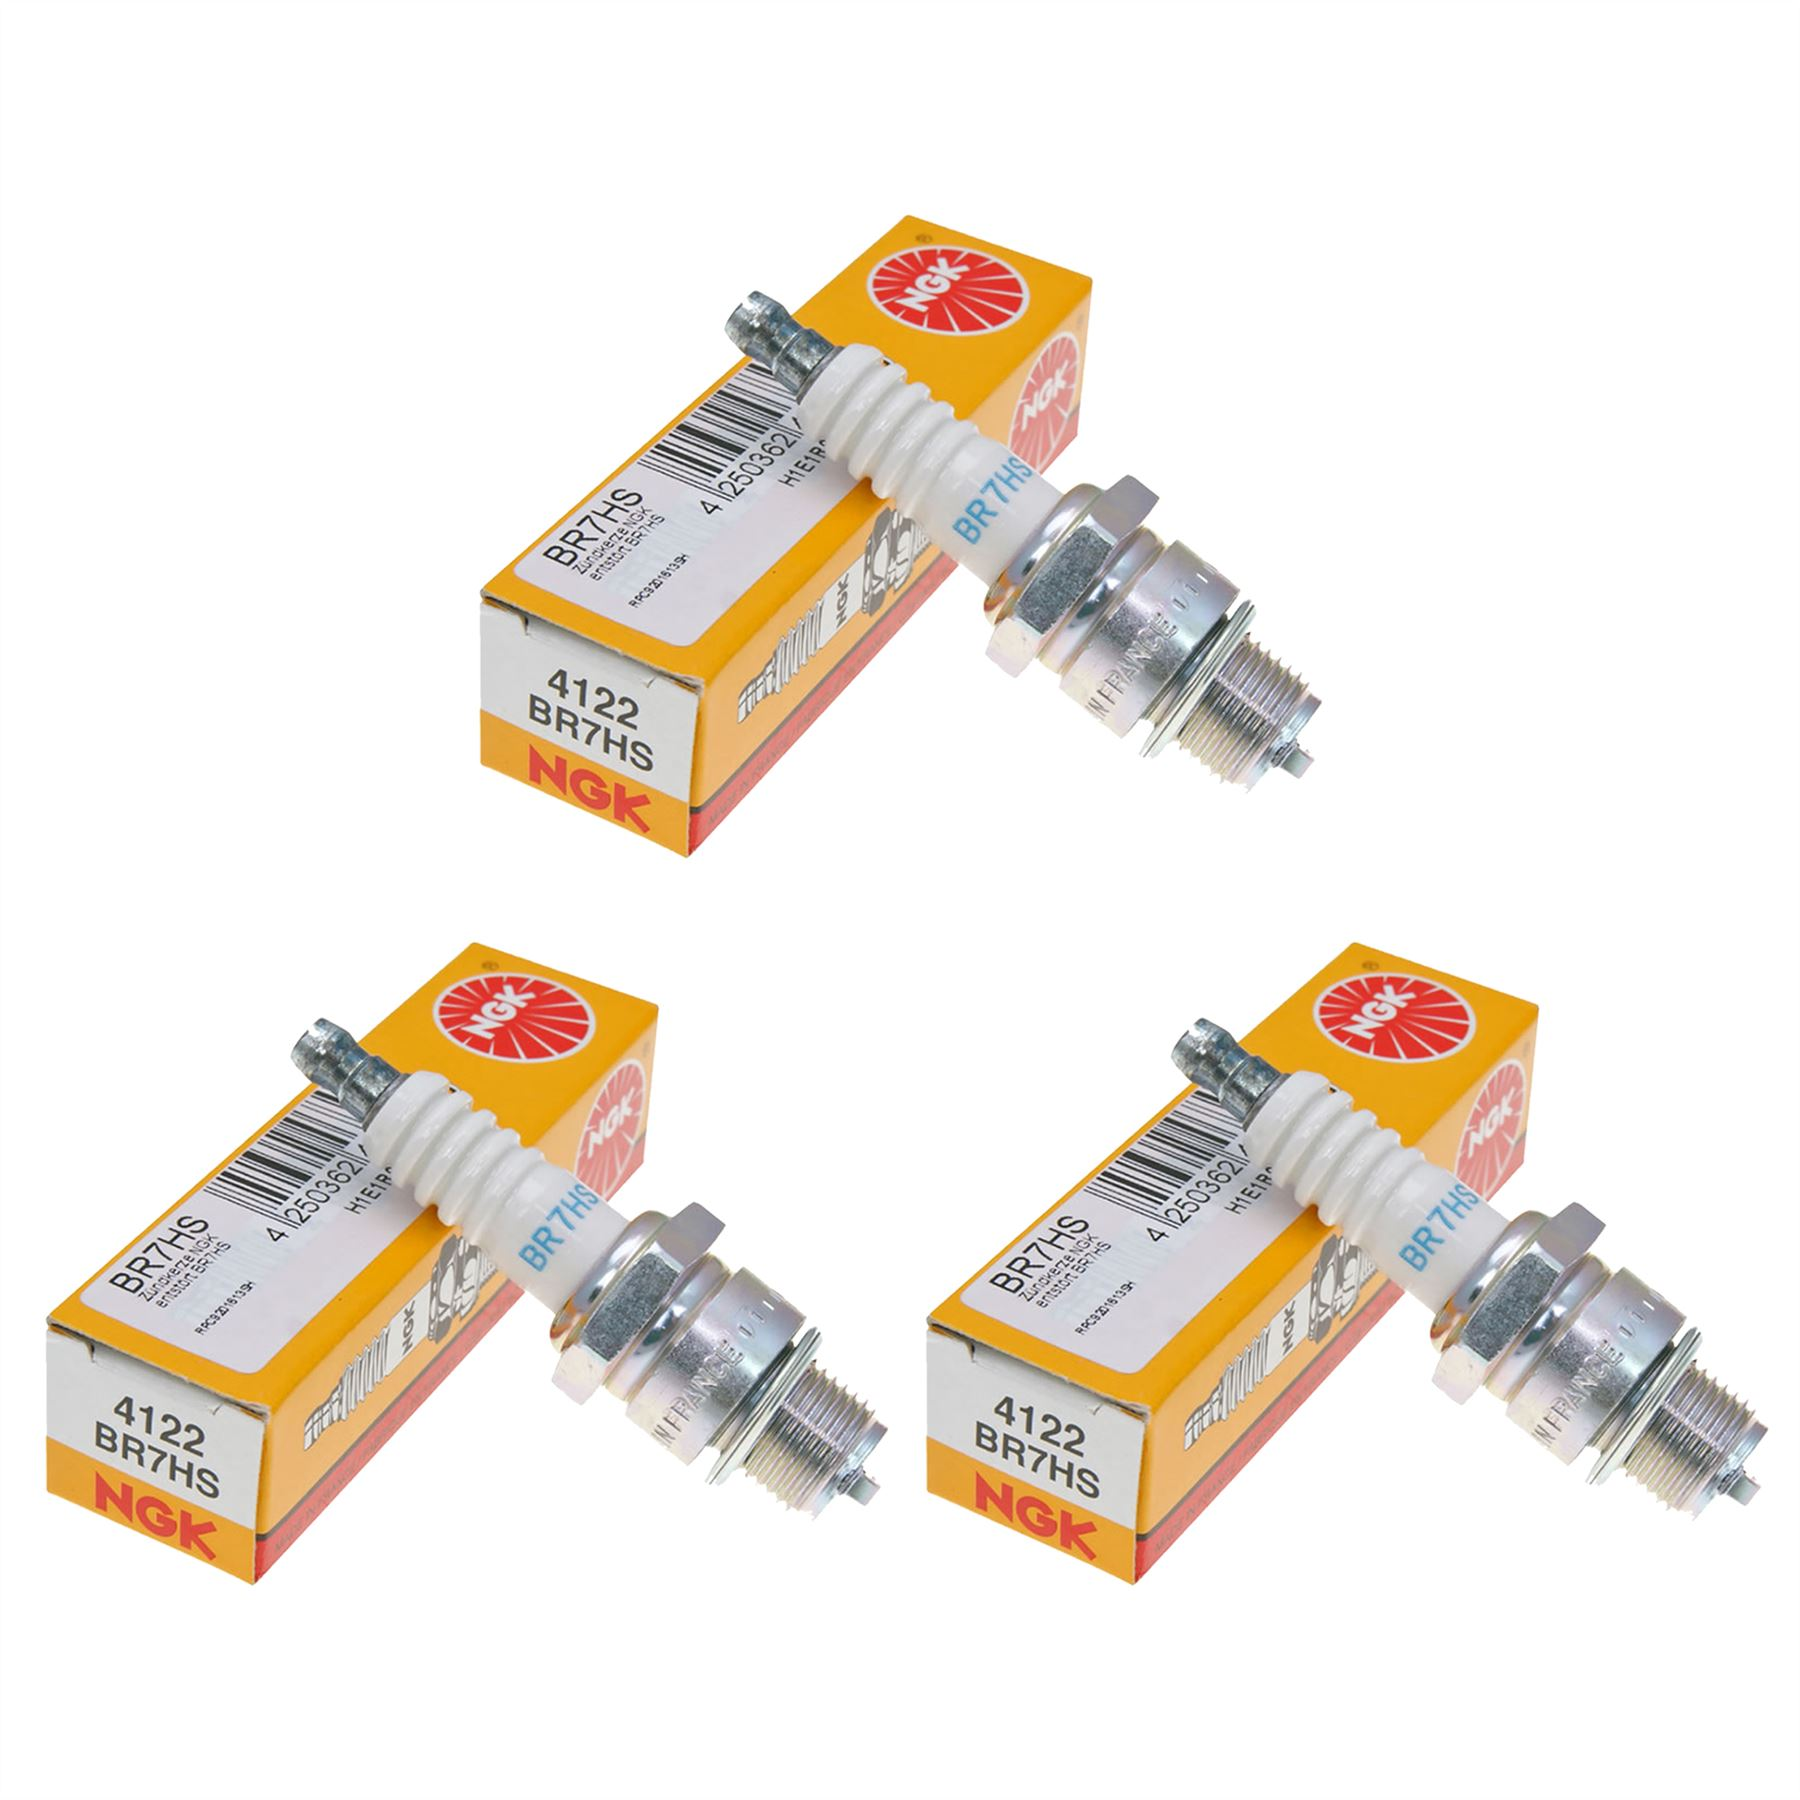 NGK Spark Plug Single Piece Pack for Stock Number 3922 or Copper Core Part No BR6HS